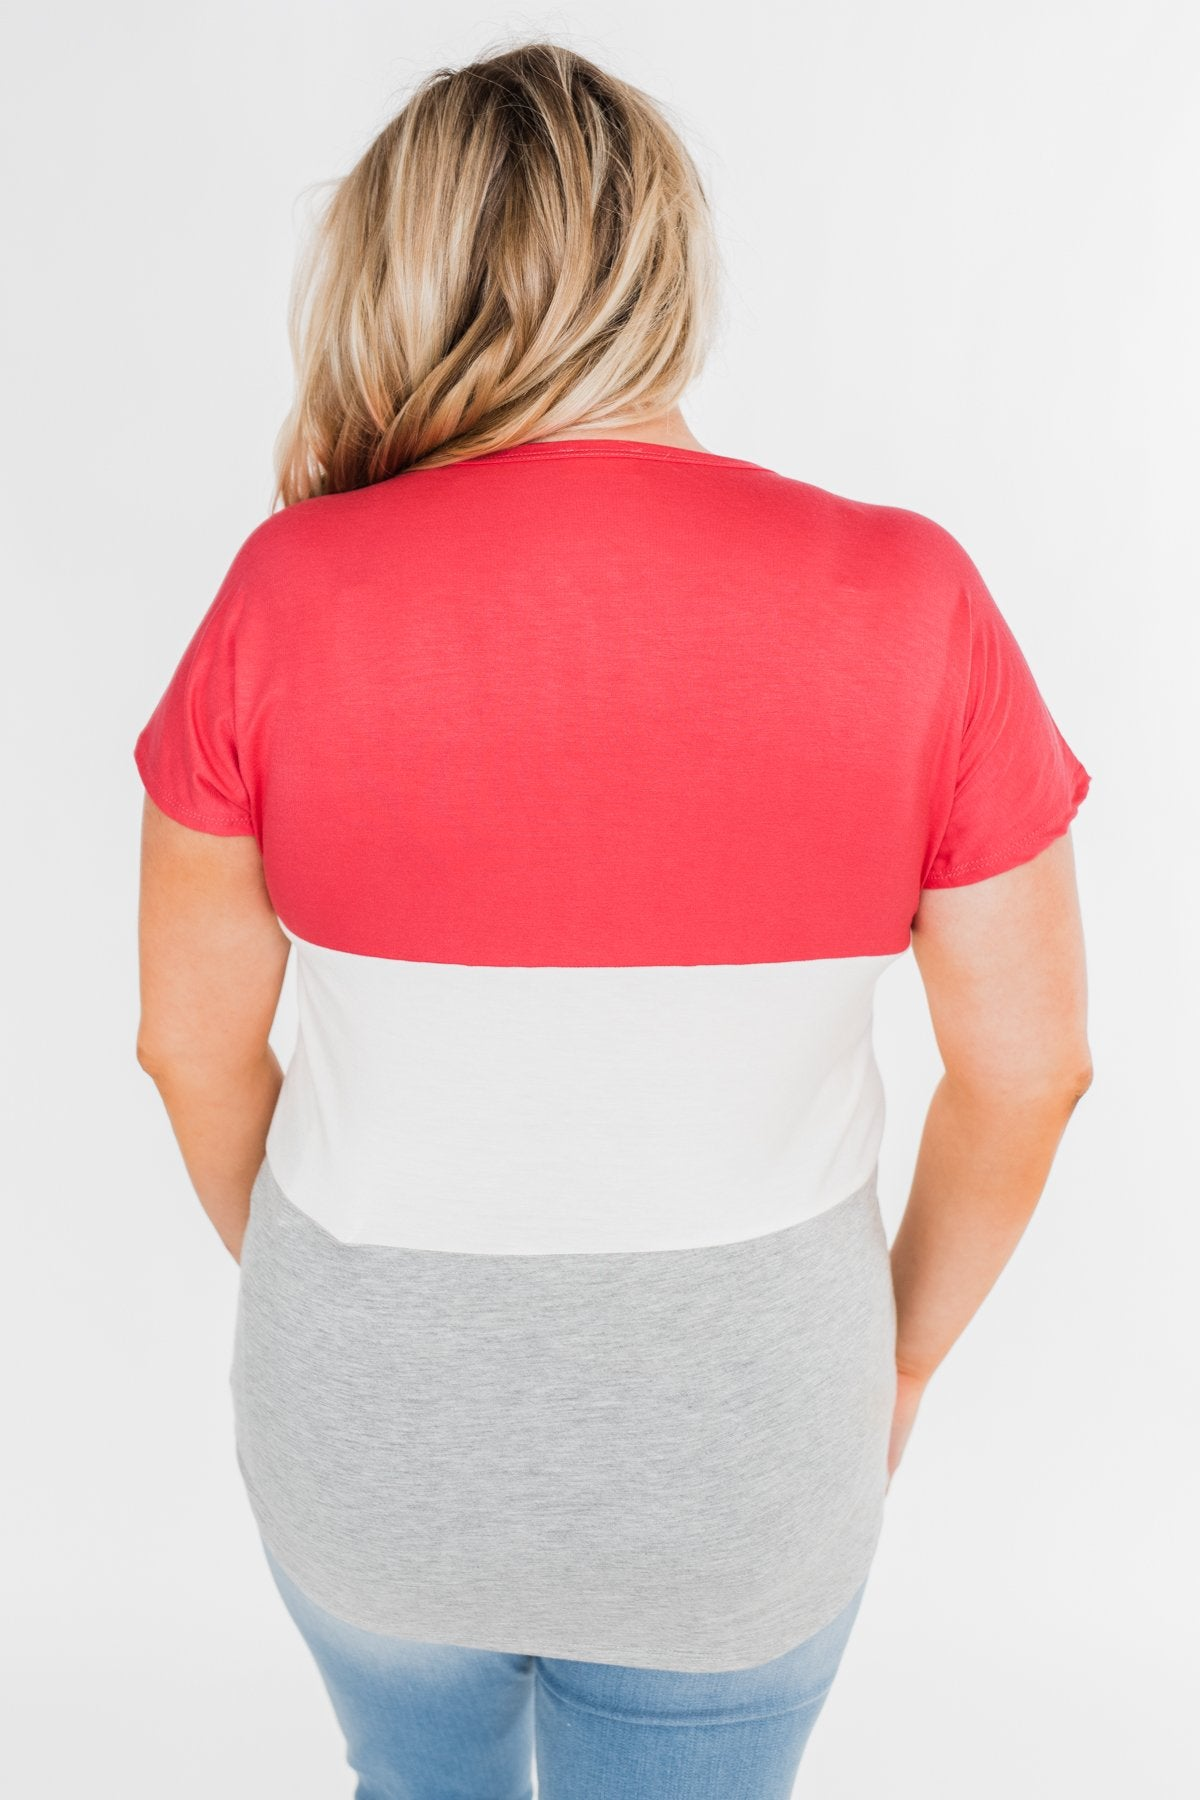 Right Here Criss Cross Color Block Top- Deep Coral